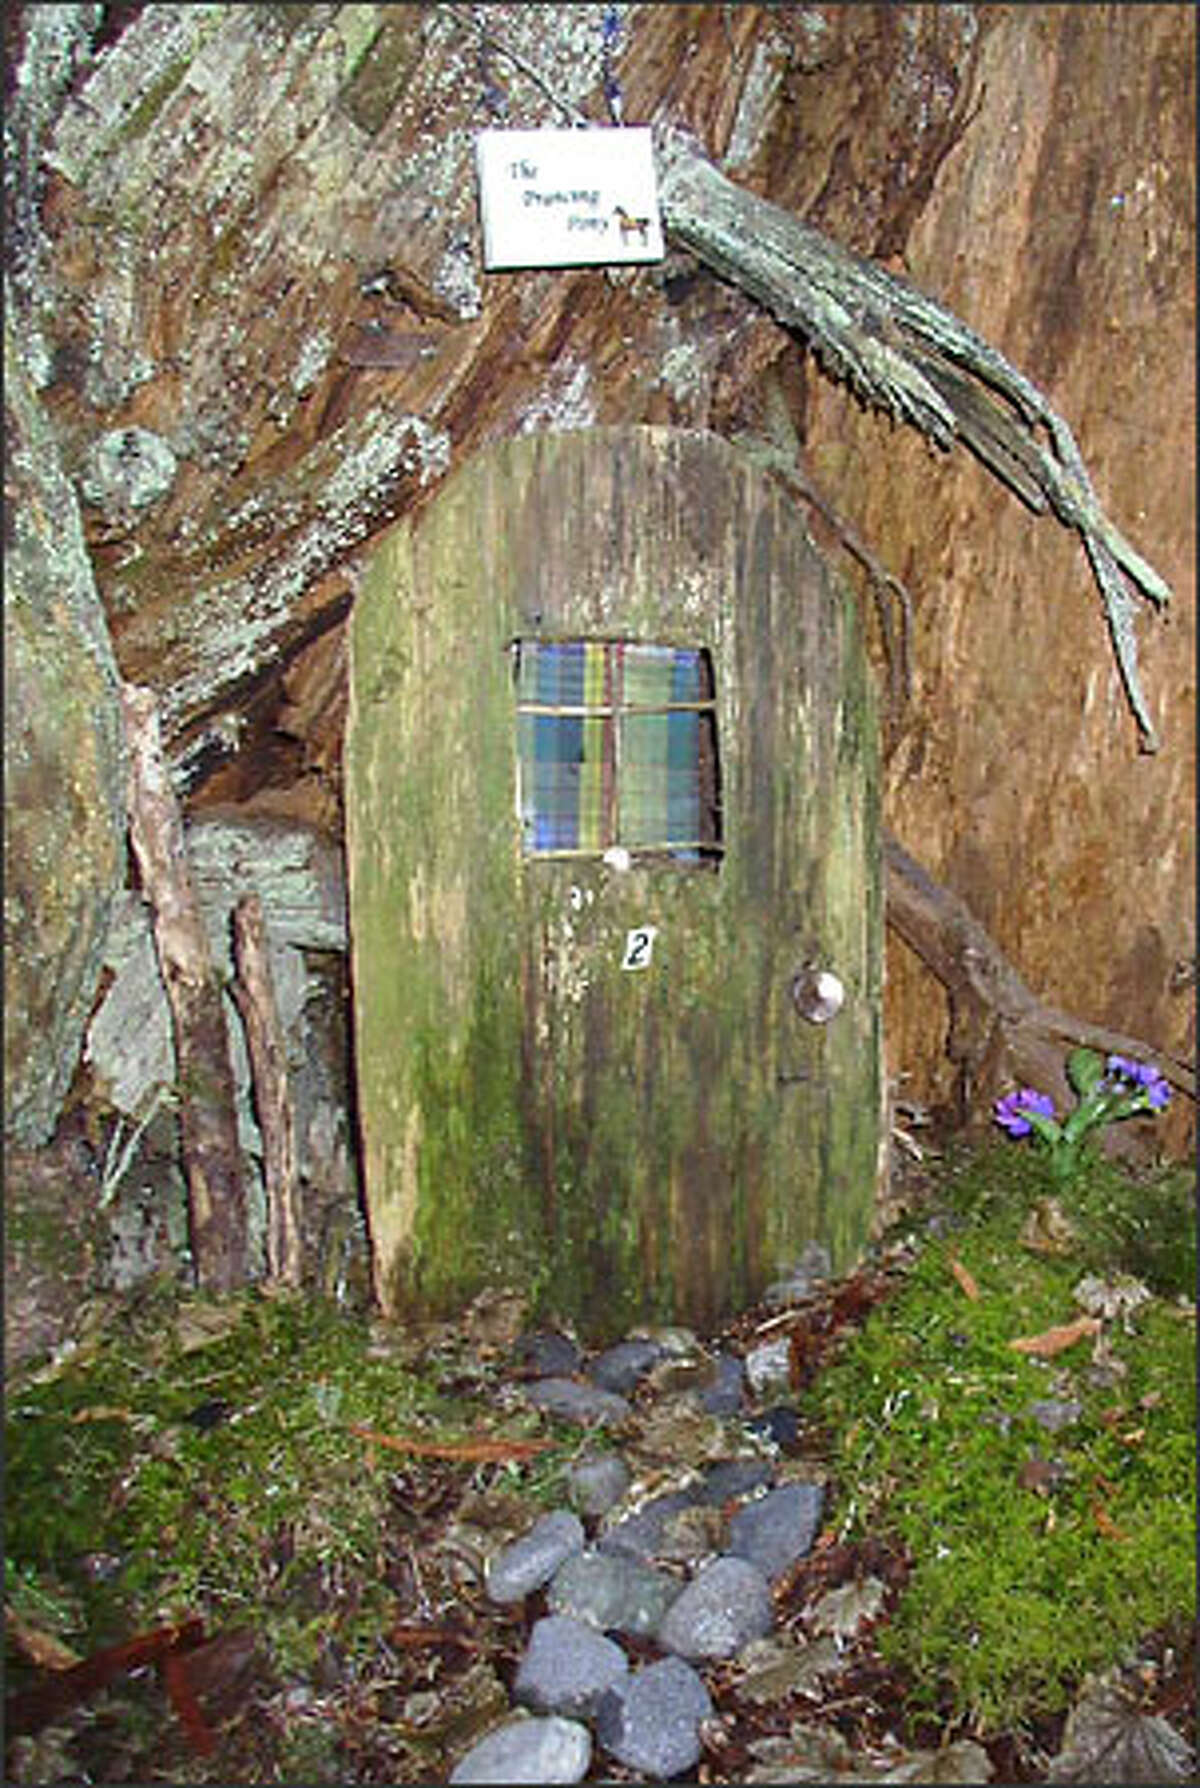 The Hobbit House, a structure fashioned from a stump, is tucked away in the midst of evergreens and salal.